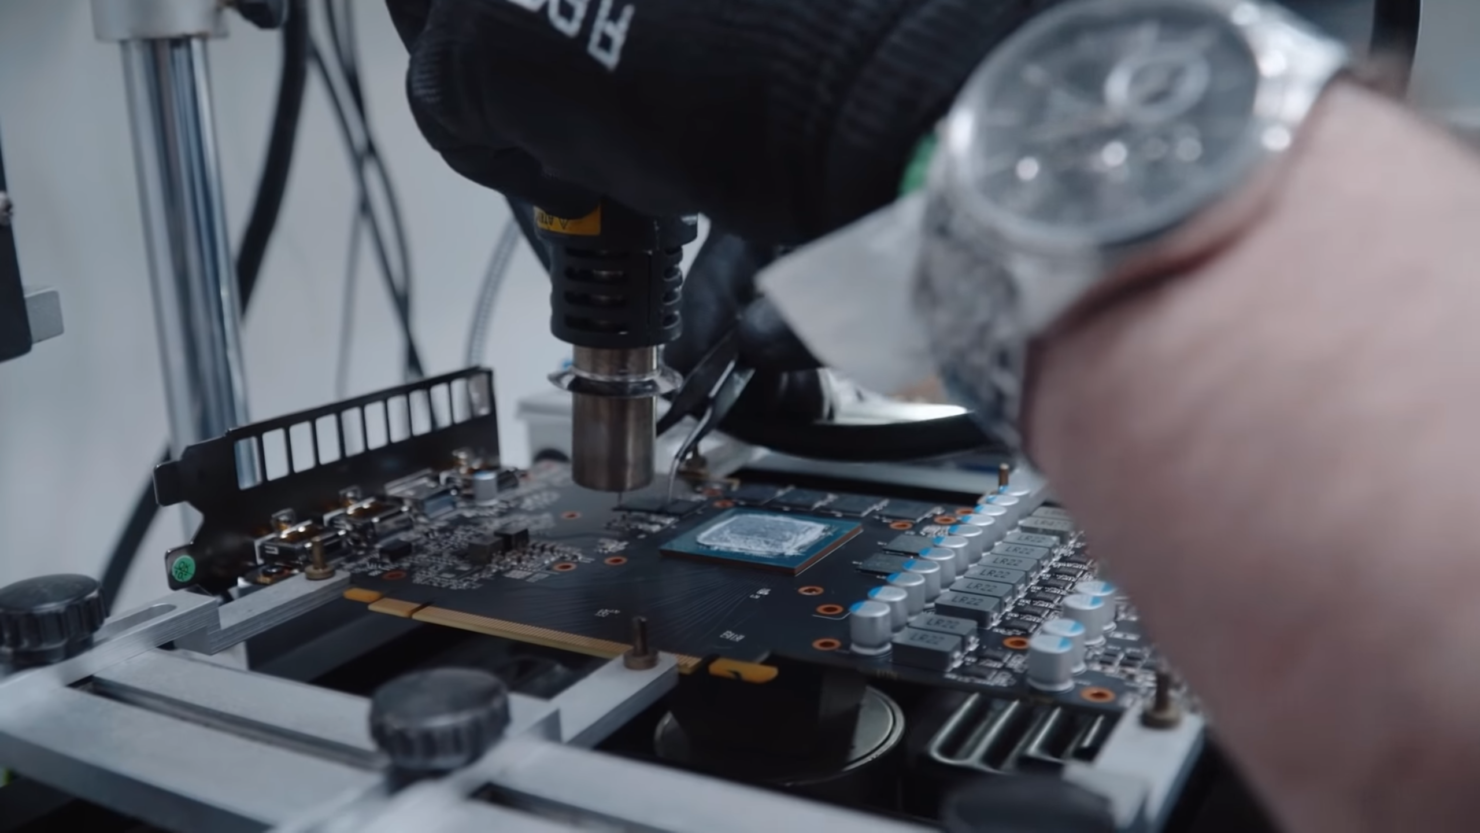 Teclab NVIDIA GeForce RTX 2080 Ti SUPER With 16 Gbps Memory Dies_5